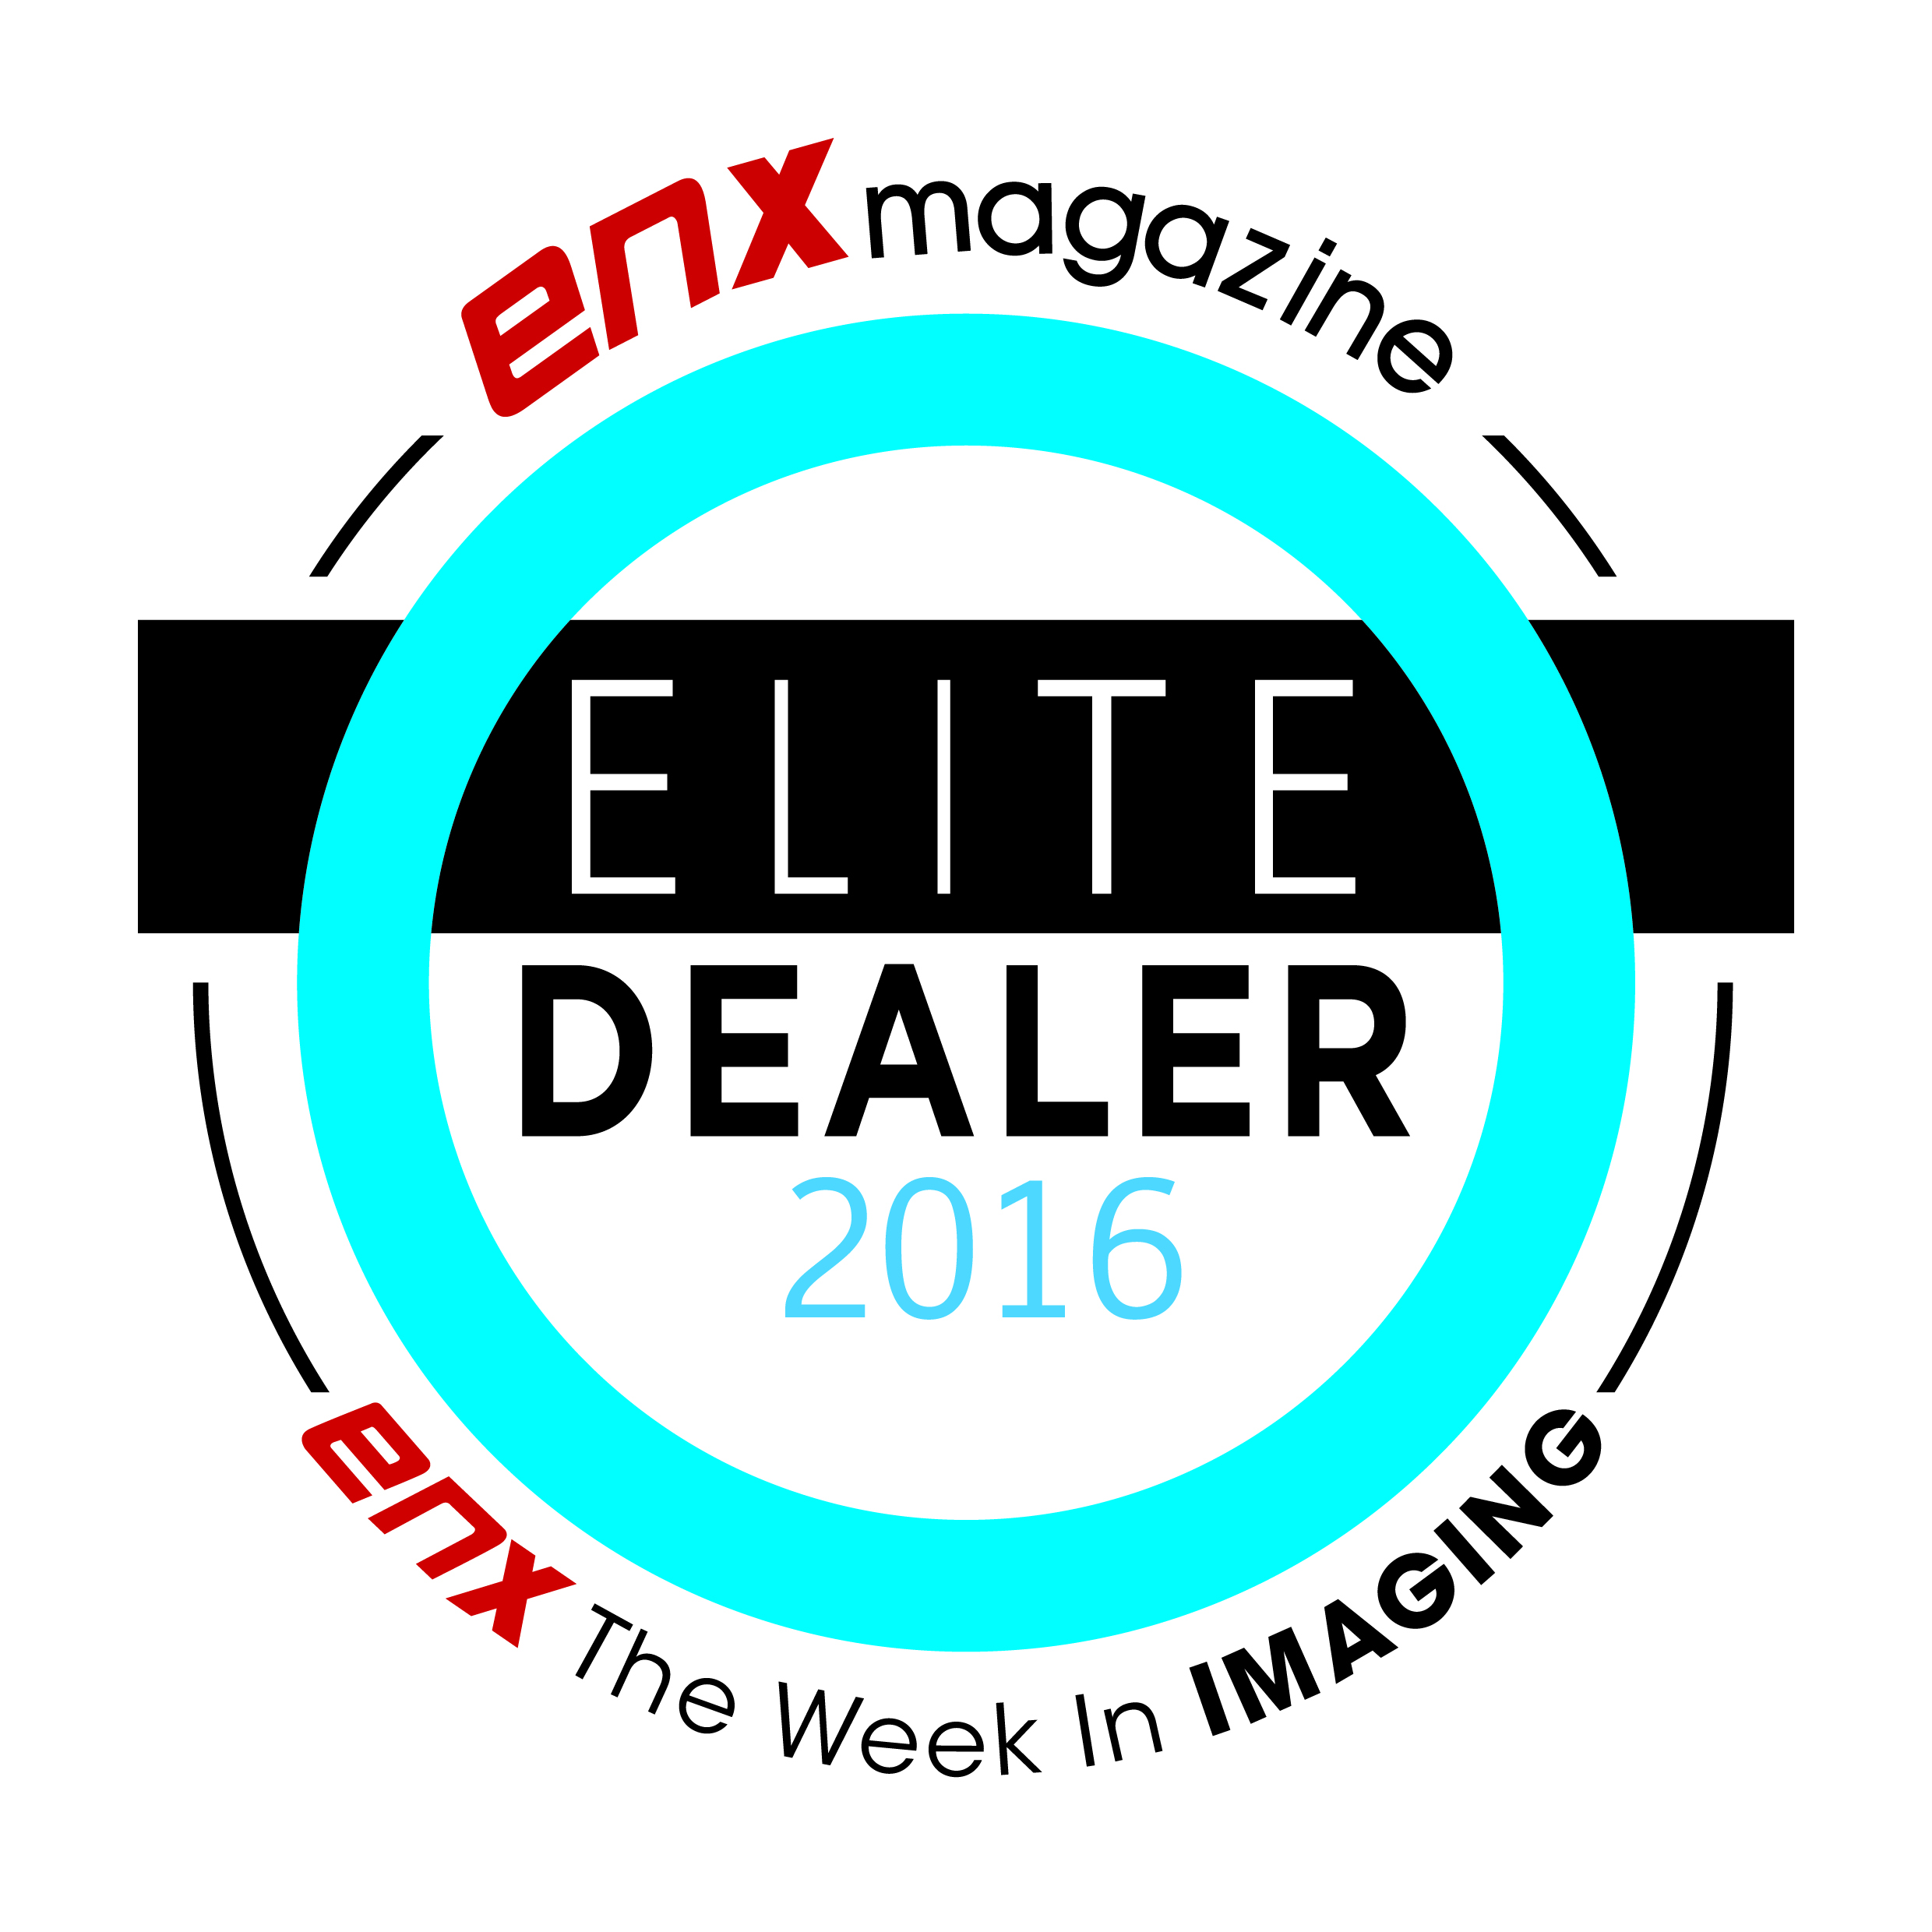 enx-2016-elite-dealer-logo